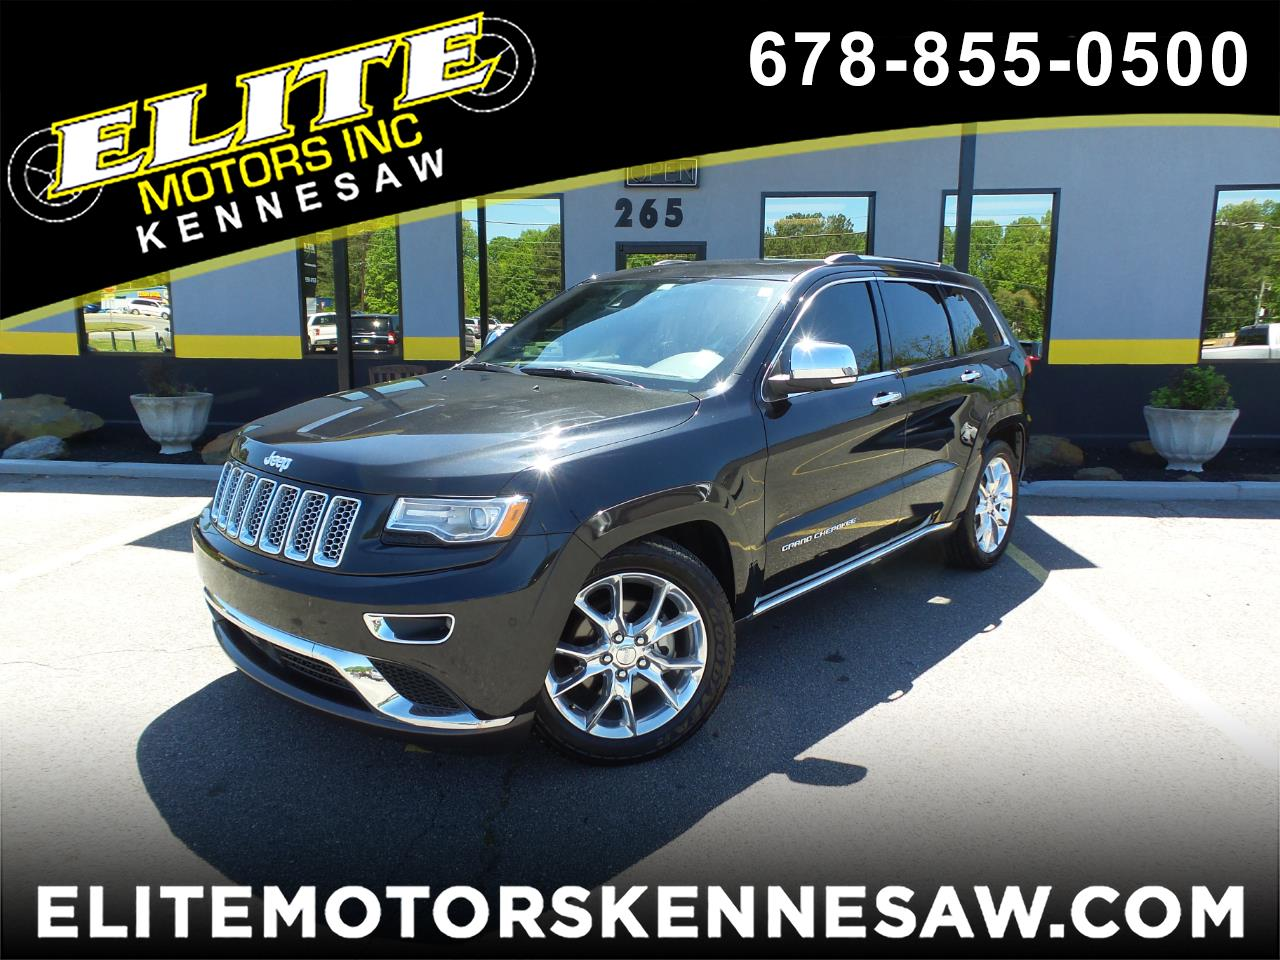 2014 Jeep Grand Cherokee Summit 4WD